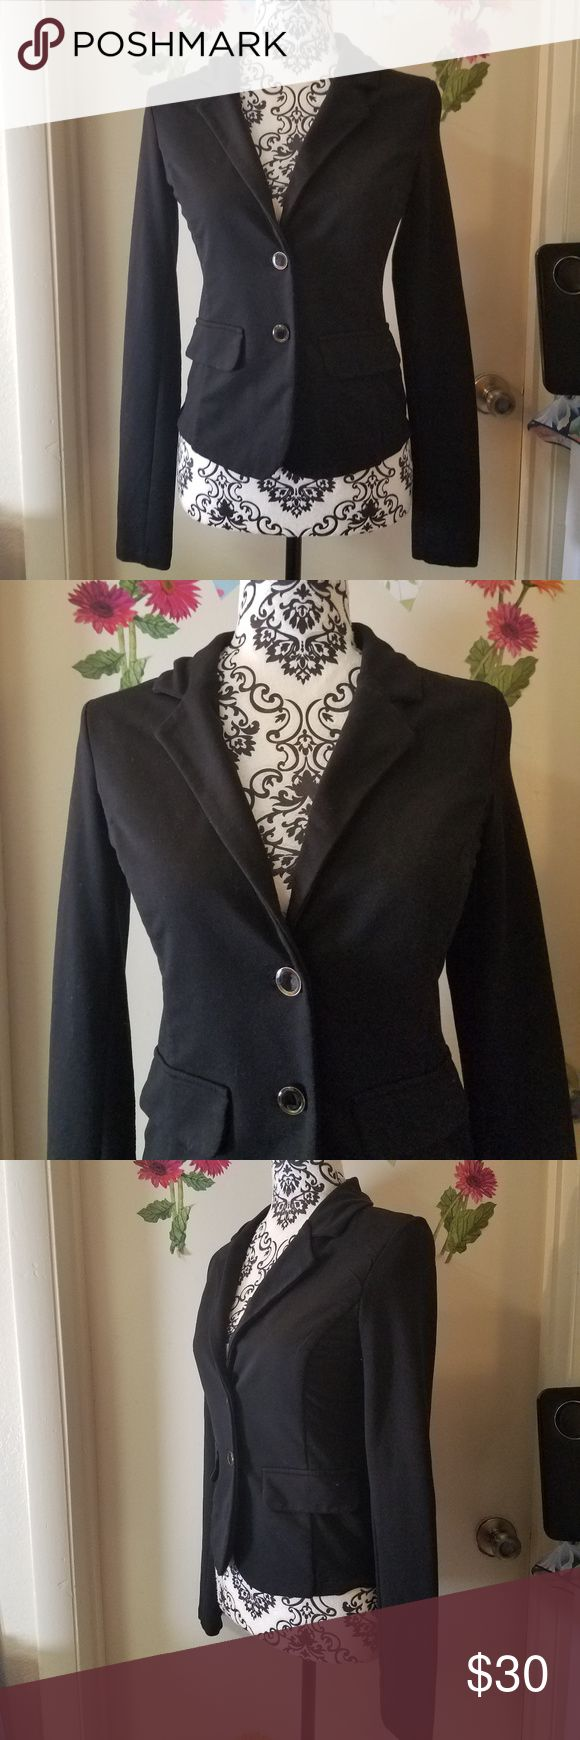 """TERRANOVA Long Sleeve Elbow Patch Jacket Blazer S TERRANOVA Long Sleeve Elbow Patch Jacket Blazer Women Black Polyester S Excellent Used Condition  Beautiful elbow patch jacket/blazer   60% Polyester  35% Cotton  5% Elastane  Measurements:  Length: 21"""" in Bust: 16"""" in  Thank you for looking!  O-T00 Terranova Jackets & Coats Blazers"""